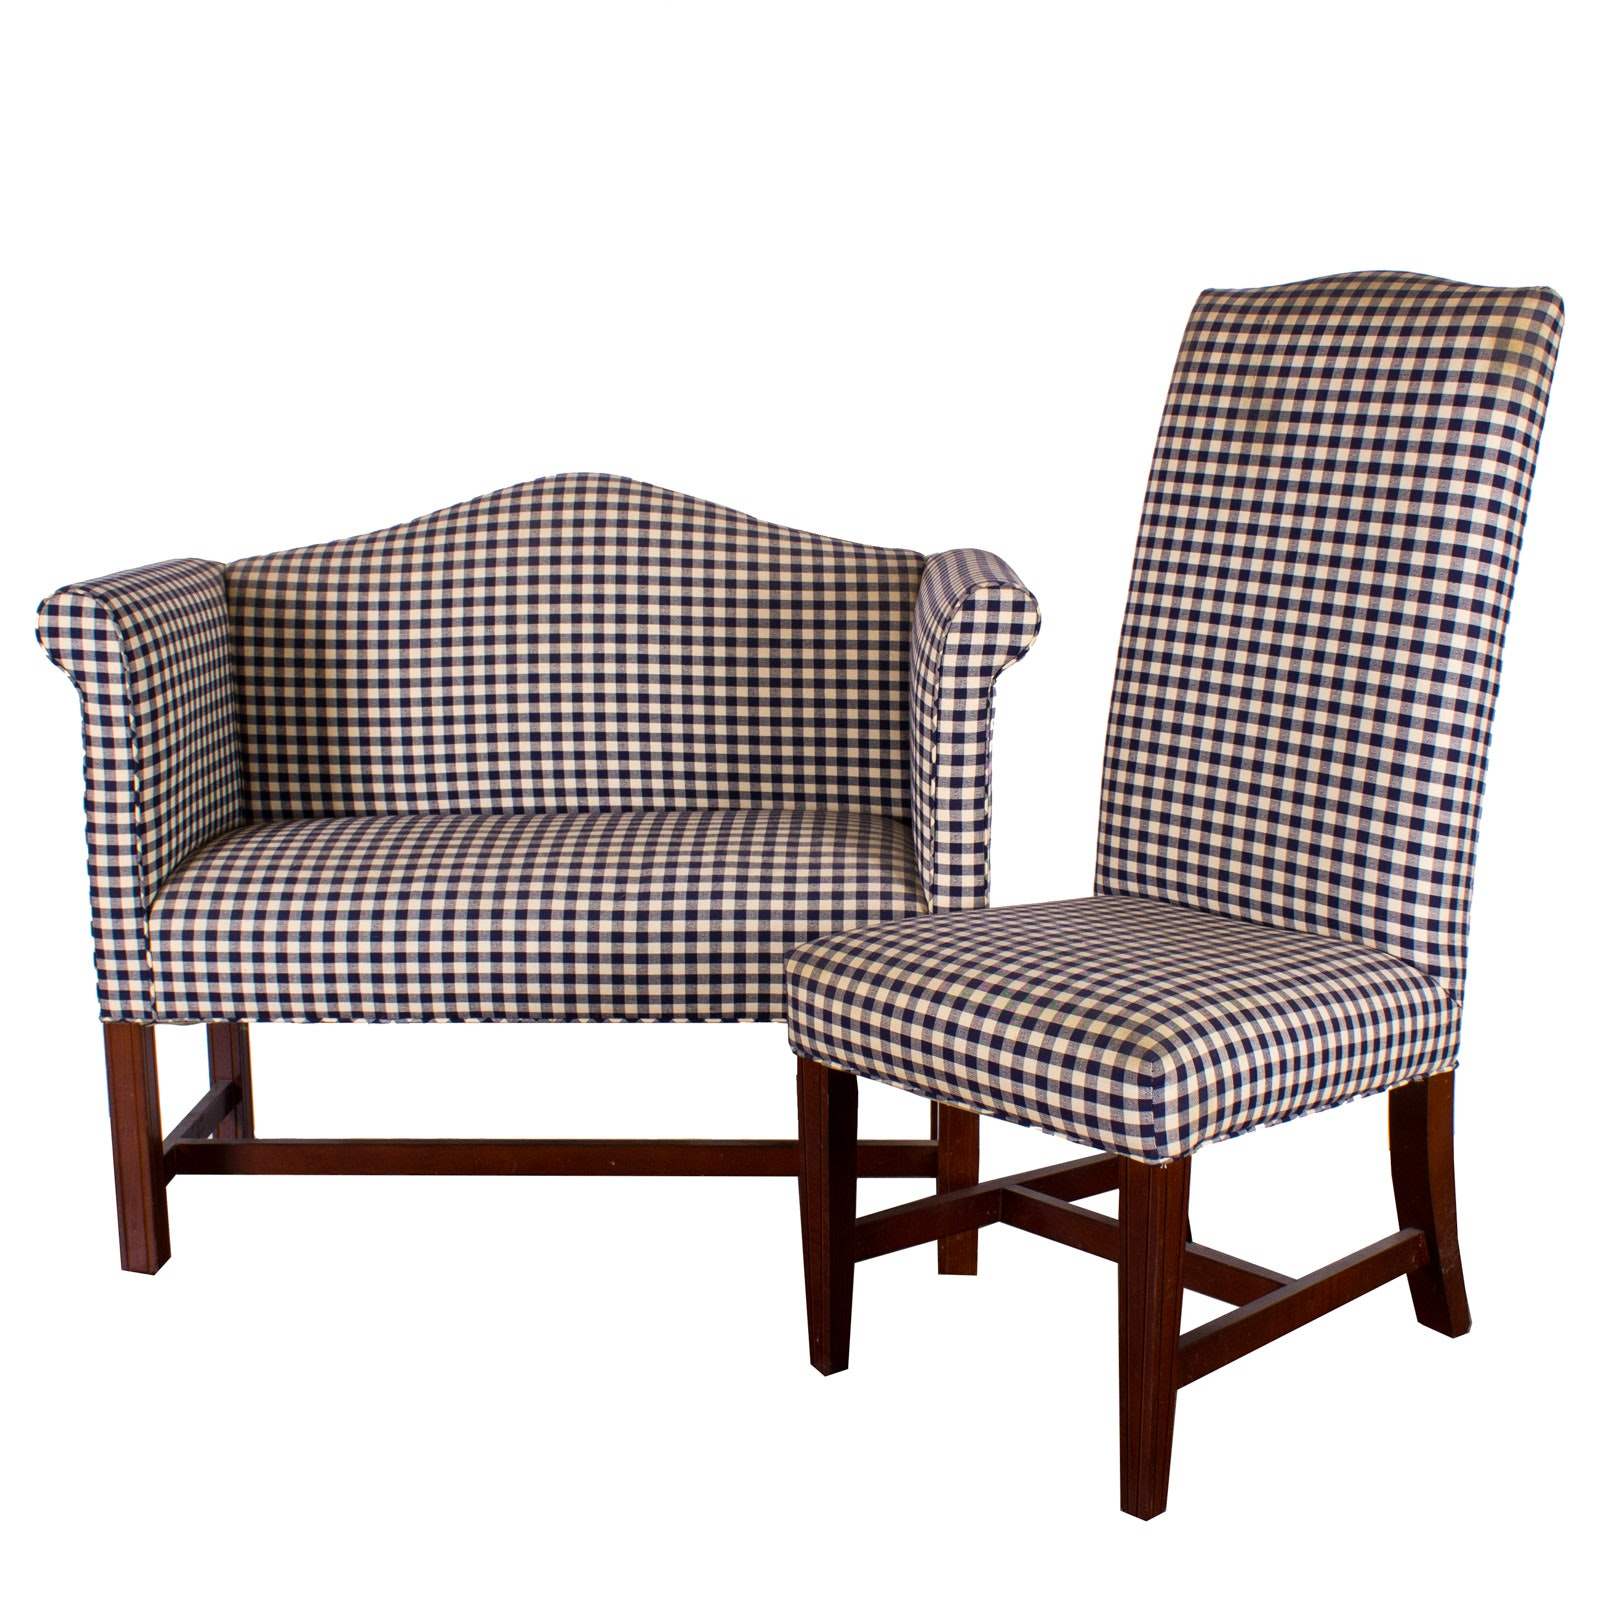 Pair Of Johnston Benchworks Upholstered Gingham Accent Chairs ...